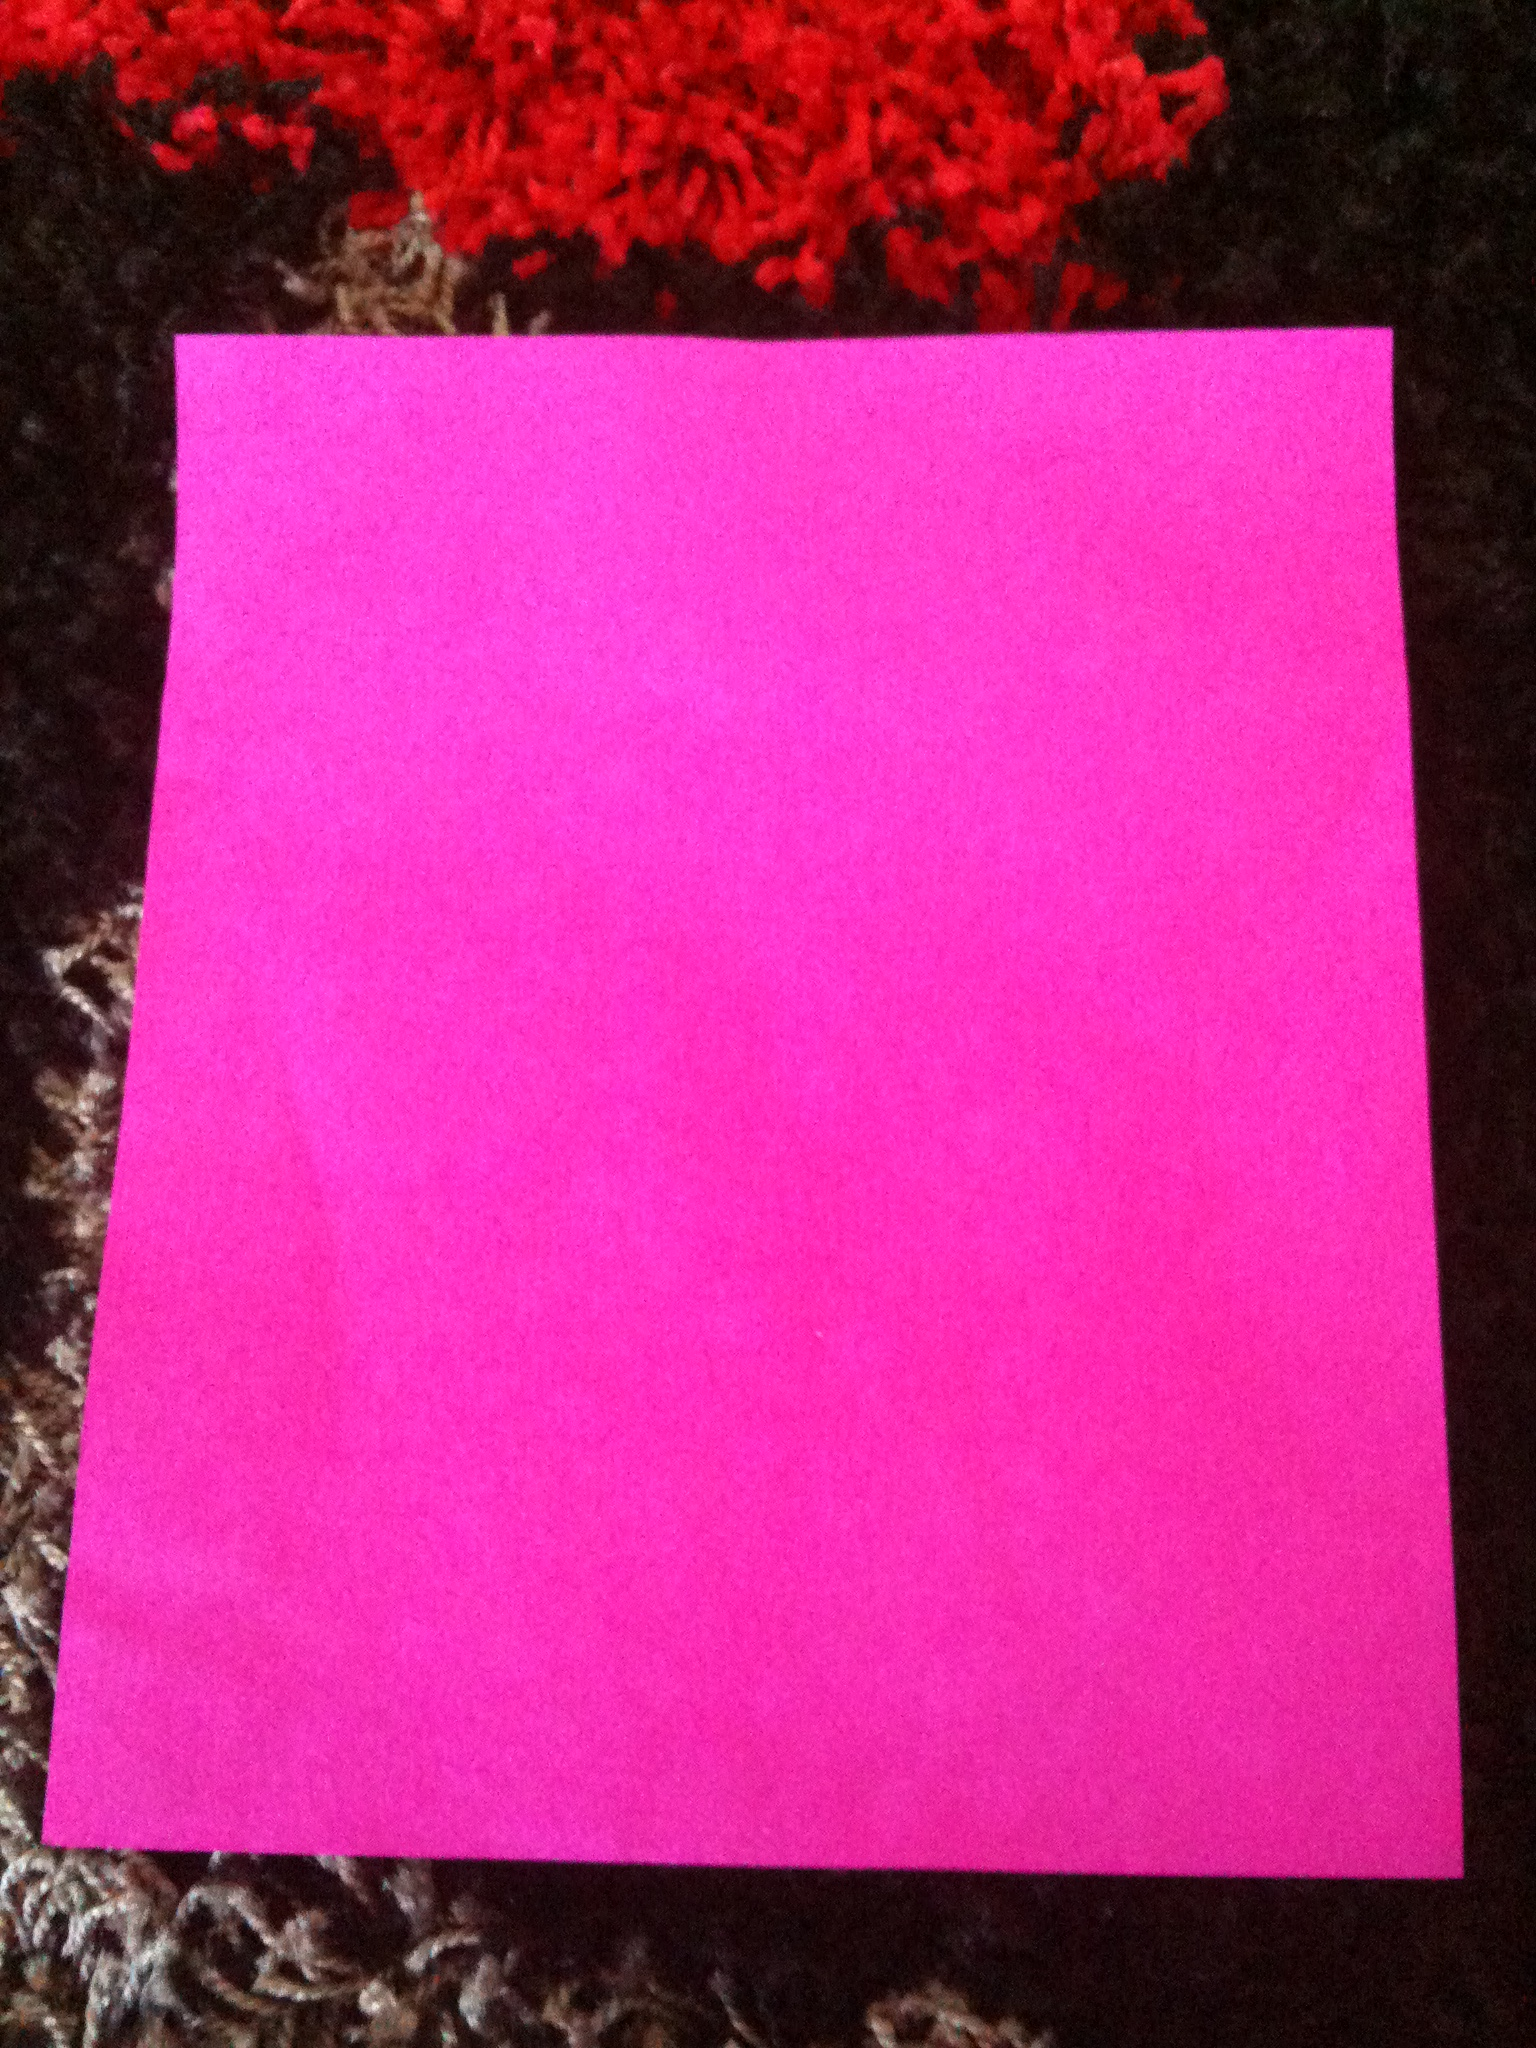 Papier Flash Premium Rose Fushia de 25 x 20 cm